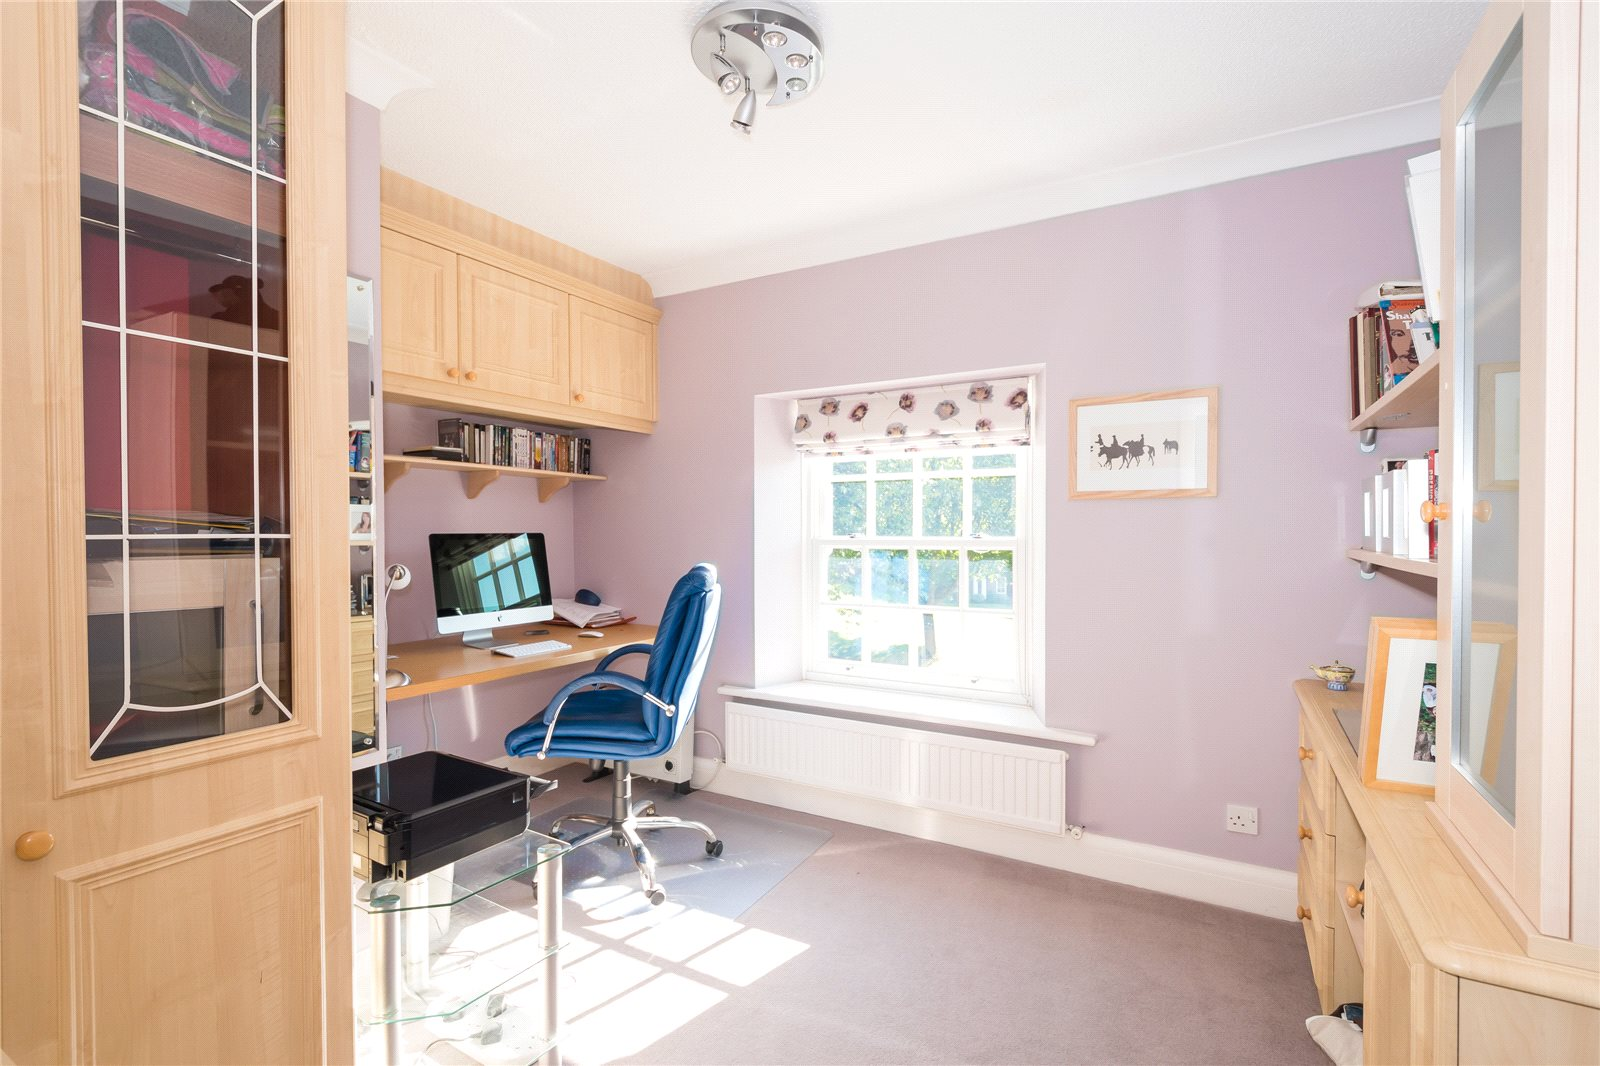 Additional photo for property listing at Woodbank Avenue, Gerrards Cross, Buckinghamshire, SL9 Gerrards Cross, Inghilterra